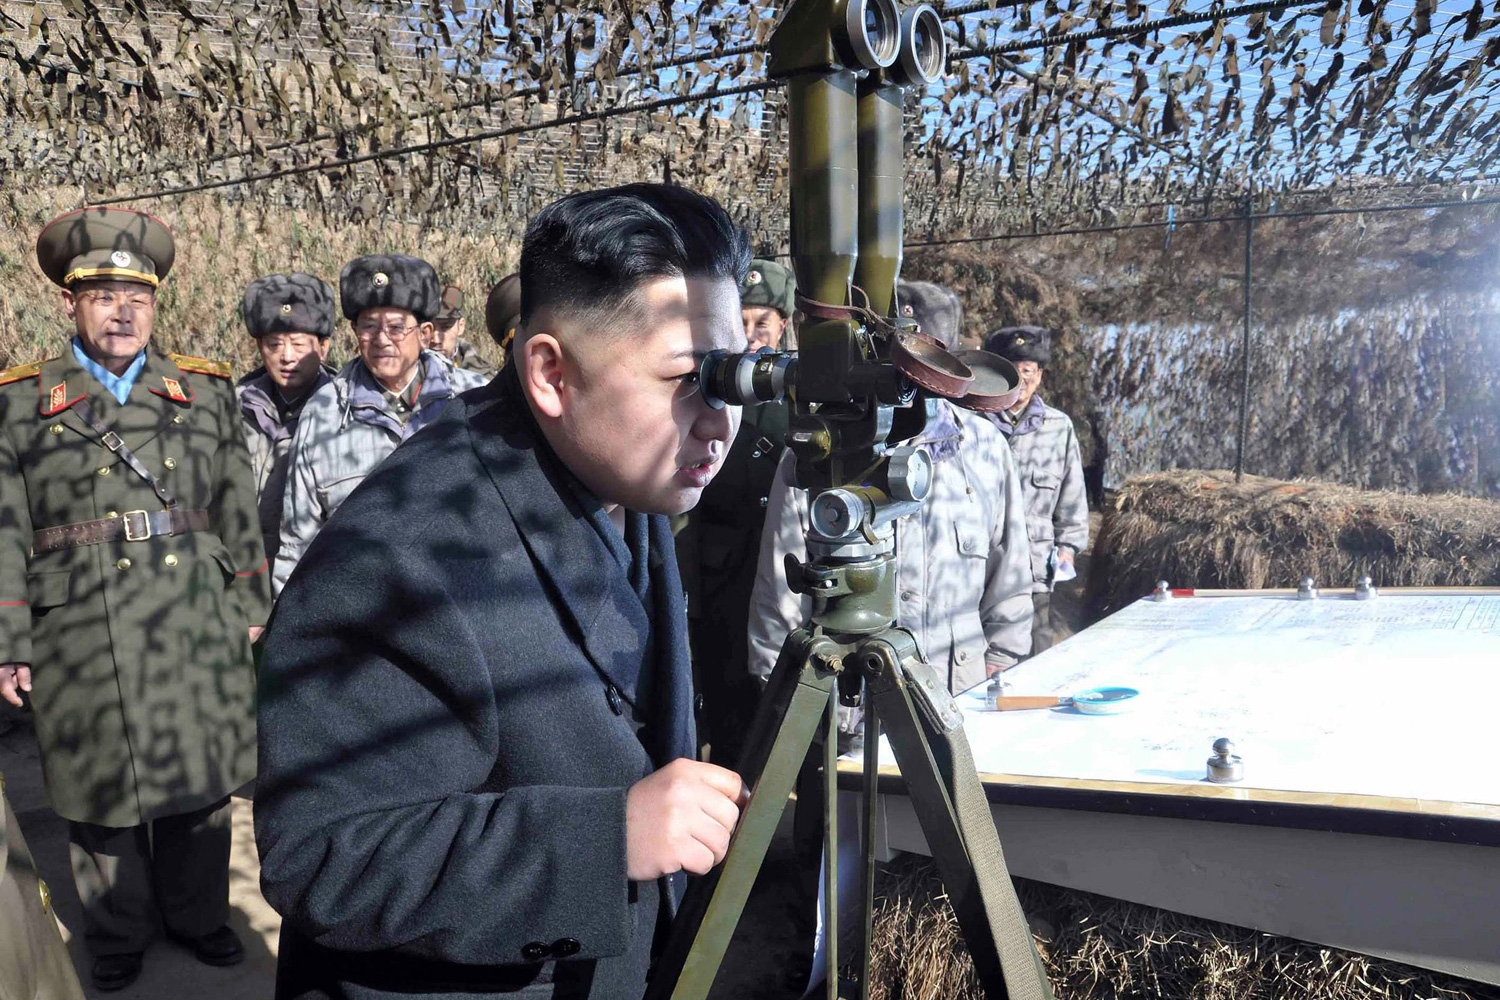 Feb. 27, 2012. North Korean leader Kim Jong-Un inspects units under the command of the Korean Peoples' Army 4th Corps, stationed in the southwestern sector of the front at an undisclosed location in North Korea.